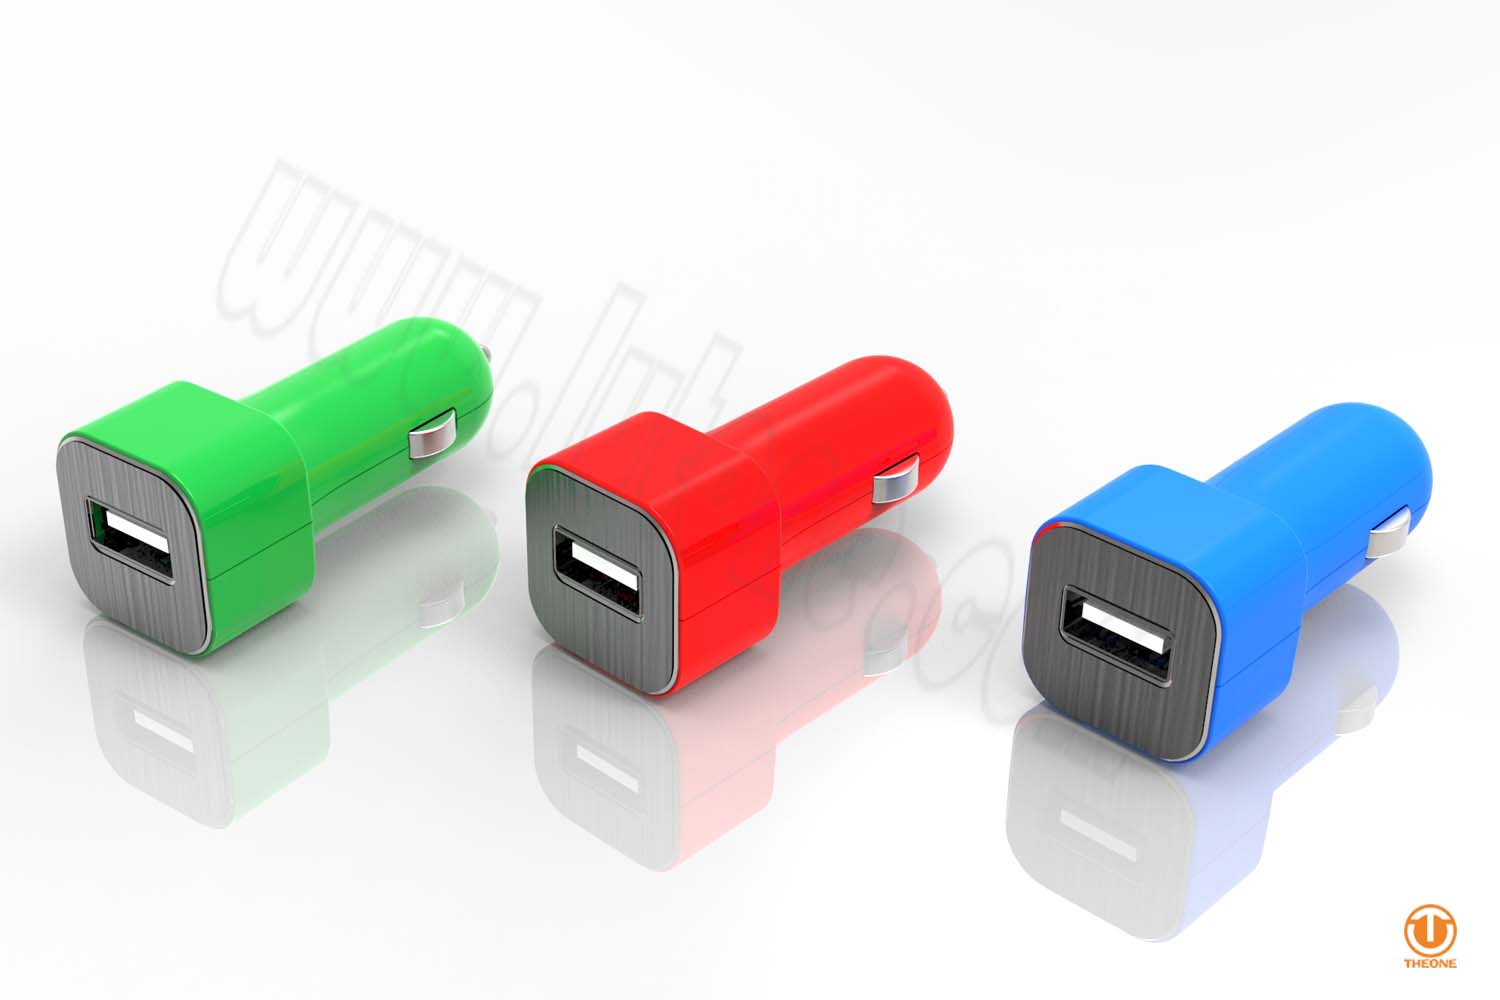 tc02a1-4 mini usb car charger